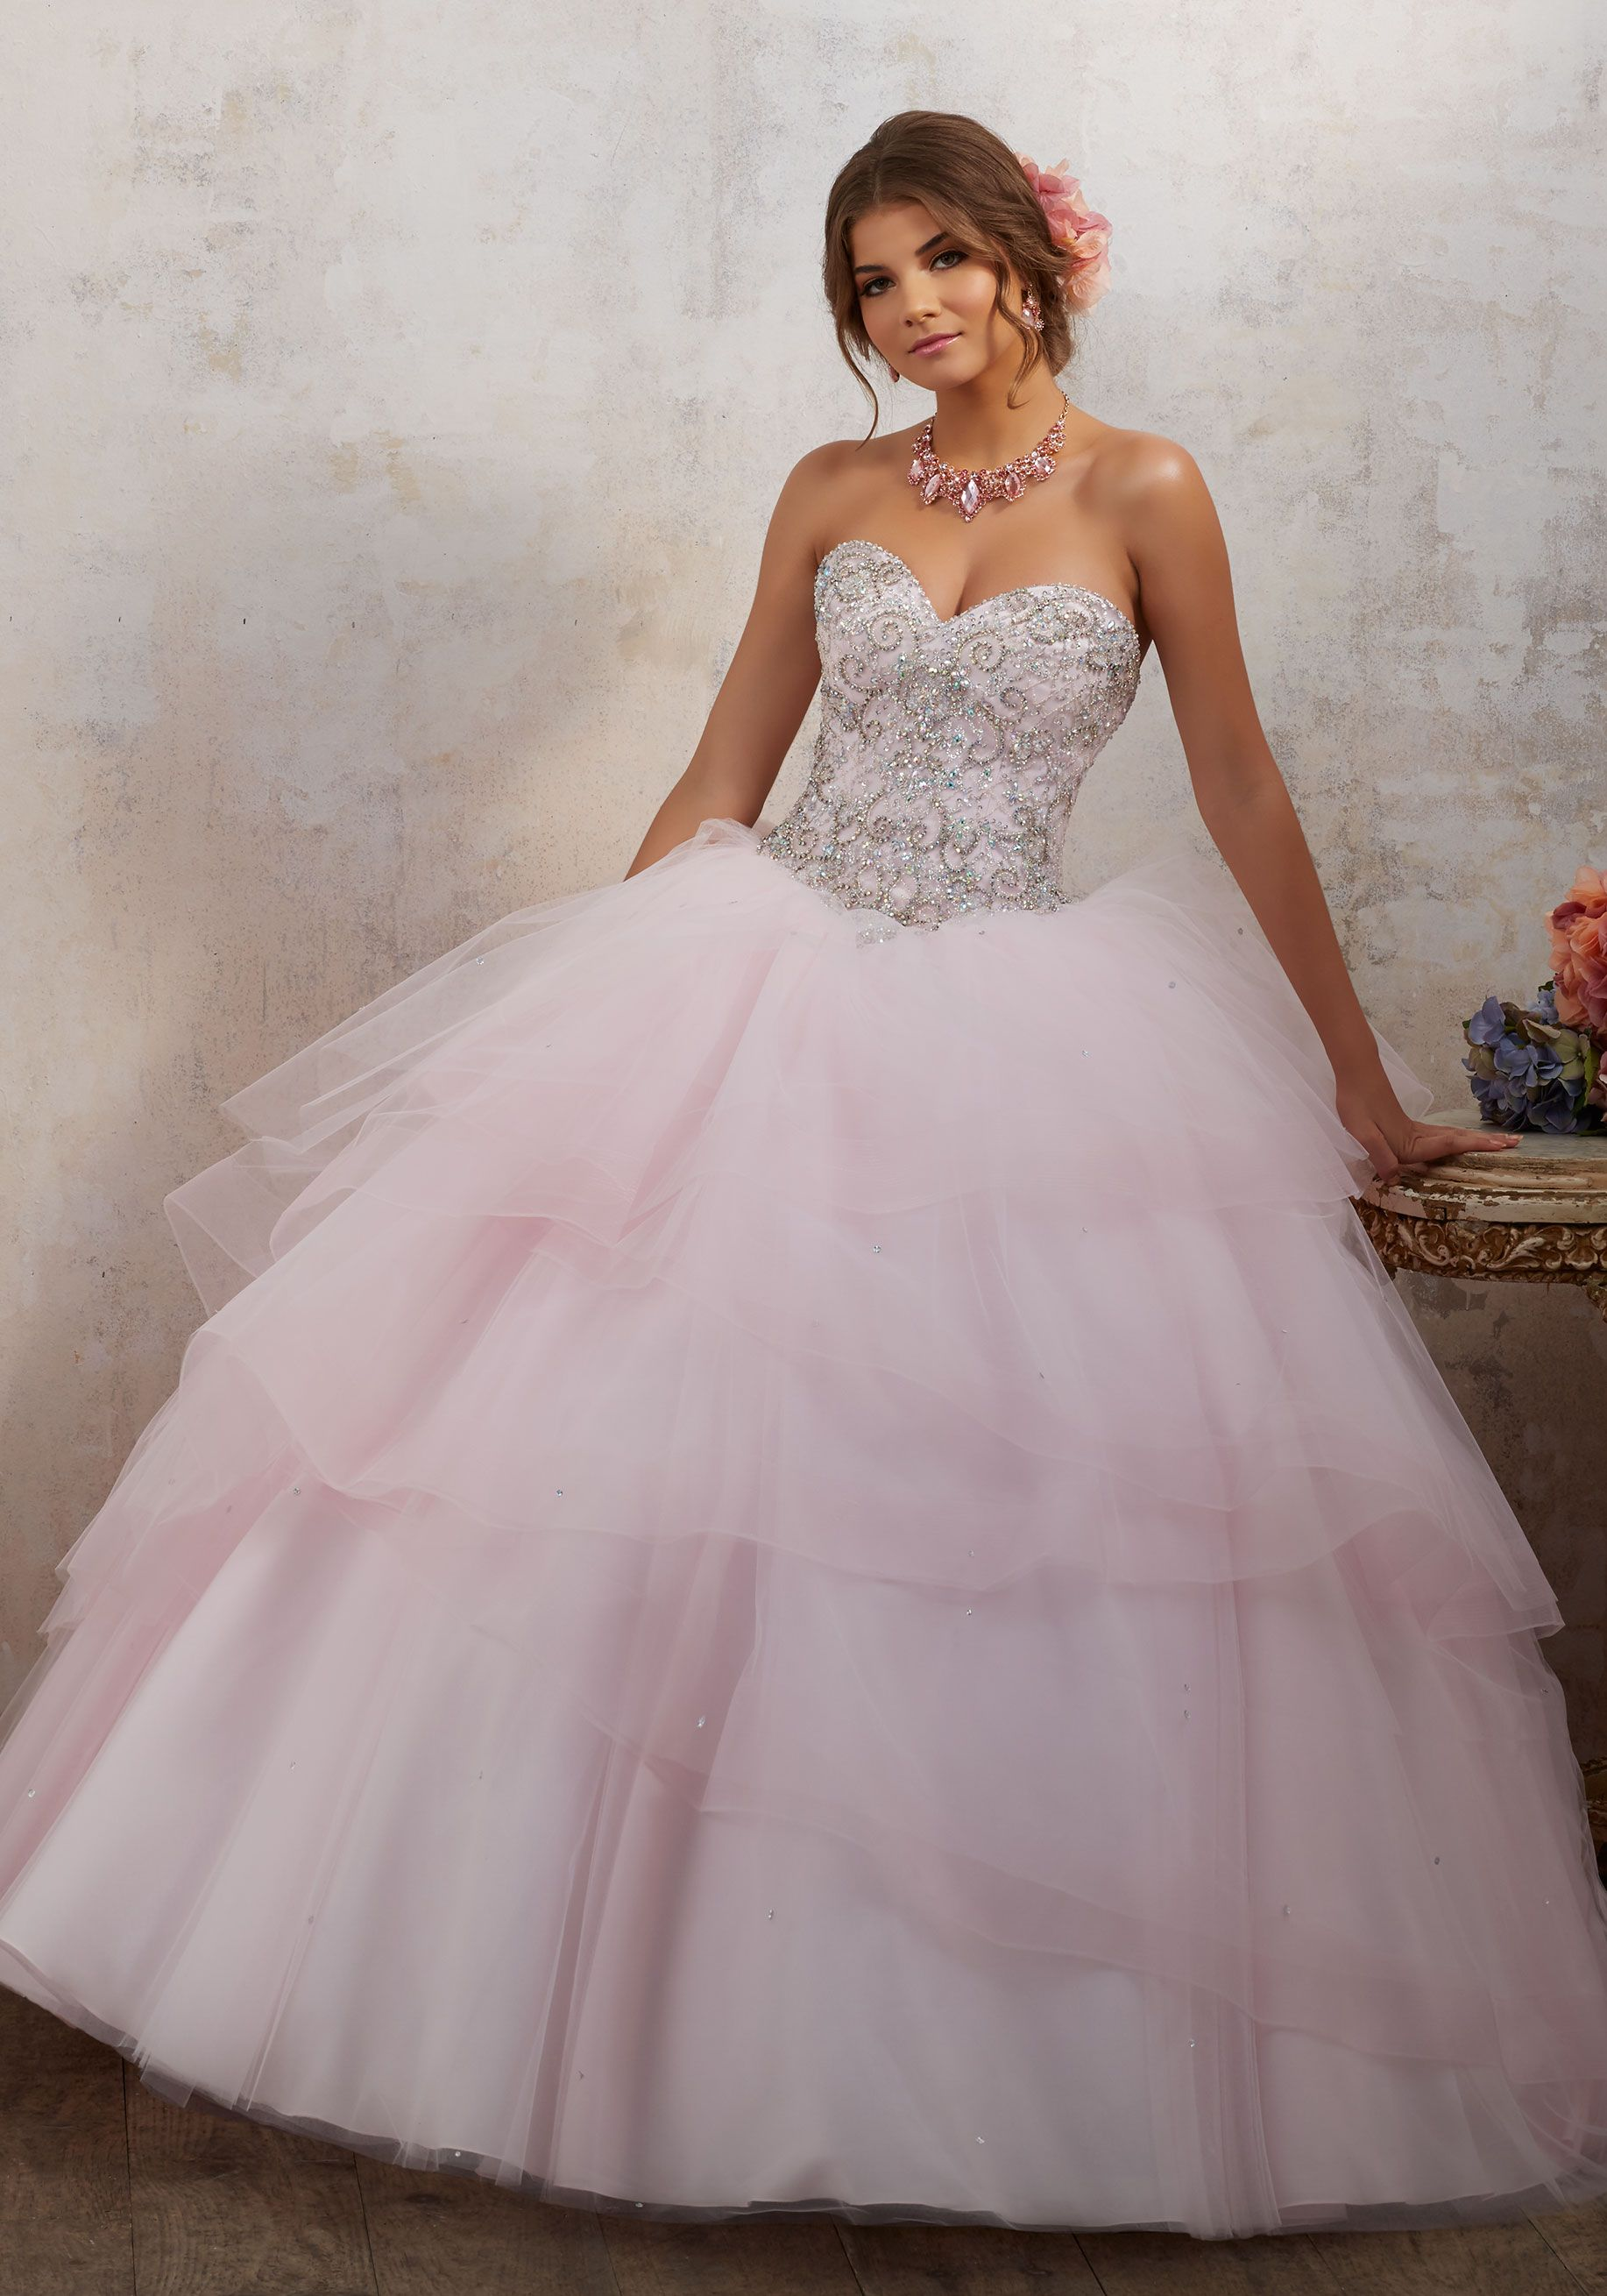 bee72de5b6 Dreamy Tulle Quinceañera Ballgown Features Gemstone Beaded Bodice with  Corset Back. Tiered Skirt is Accented with Scattered Beading. Matching  Bolero Jacket